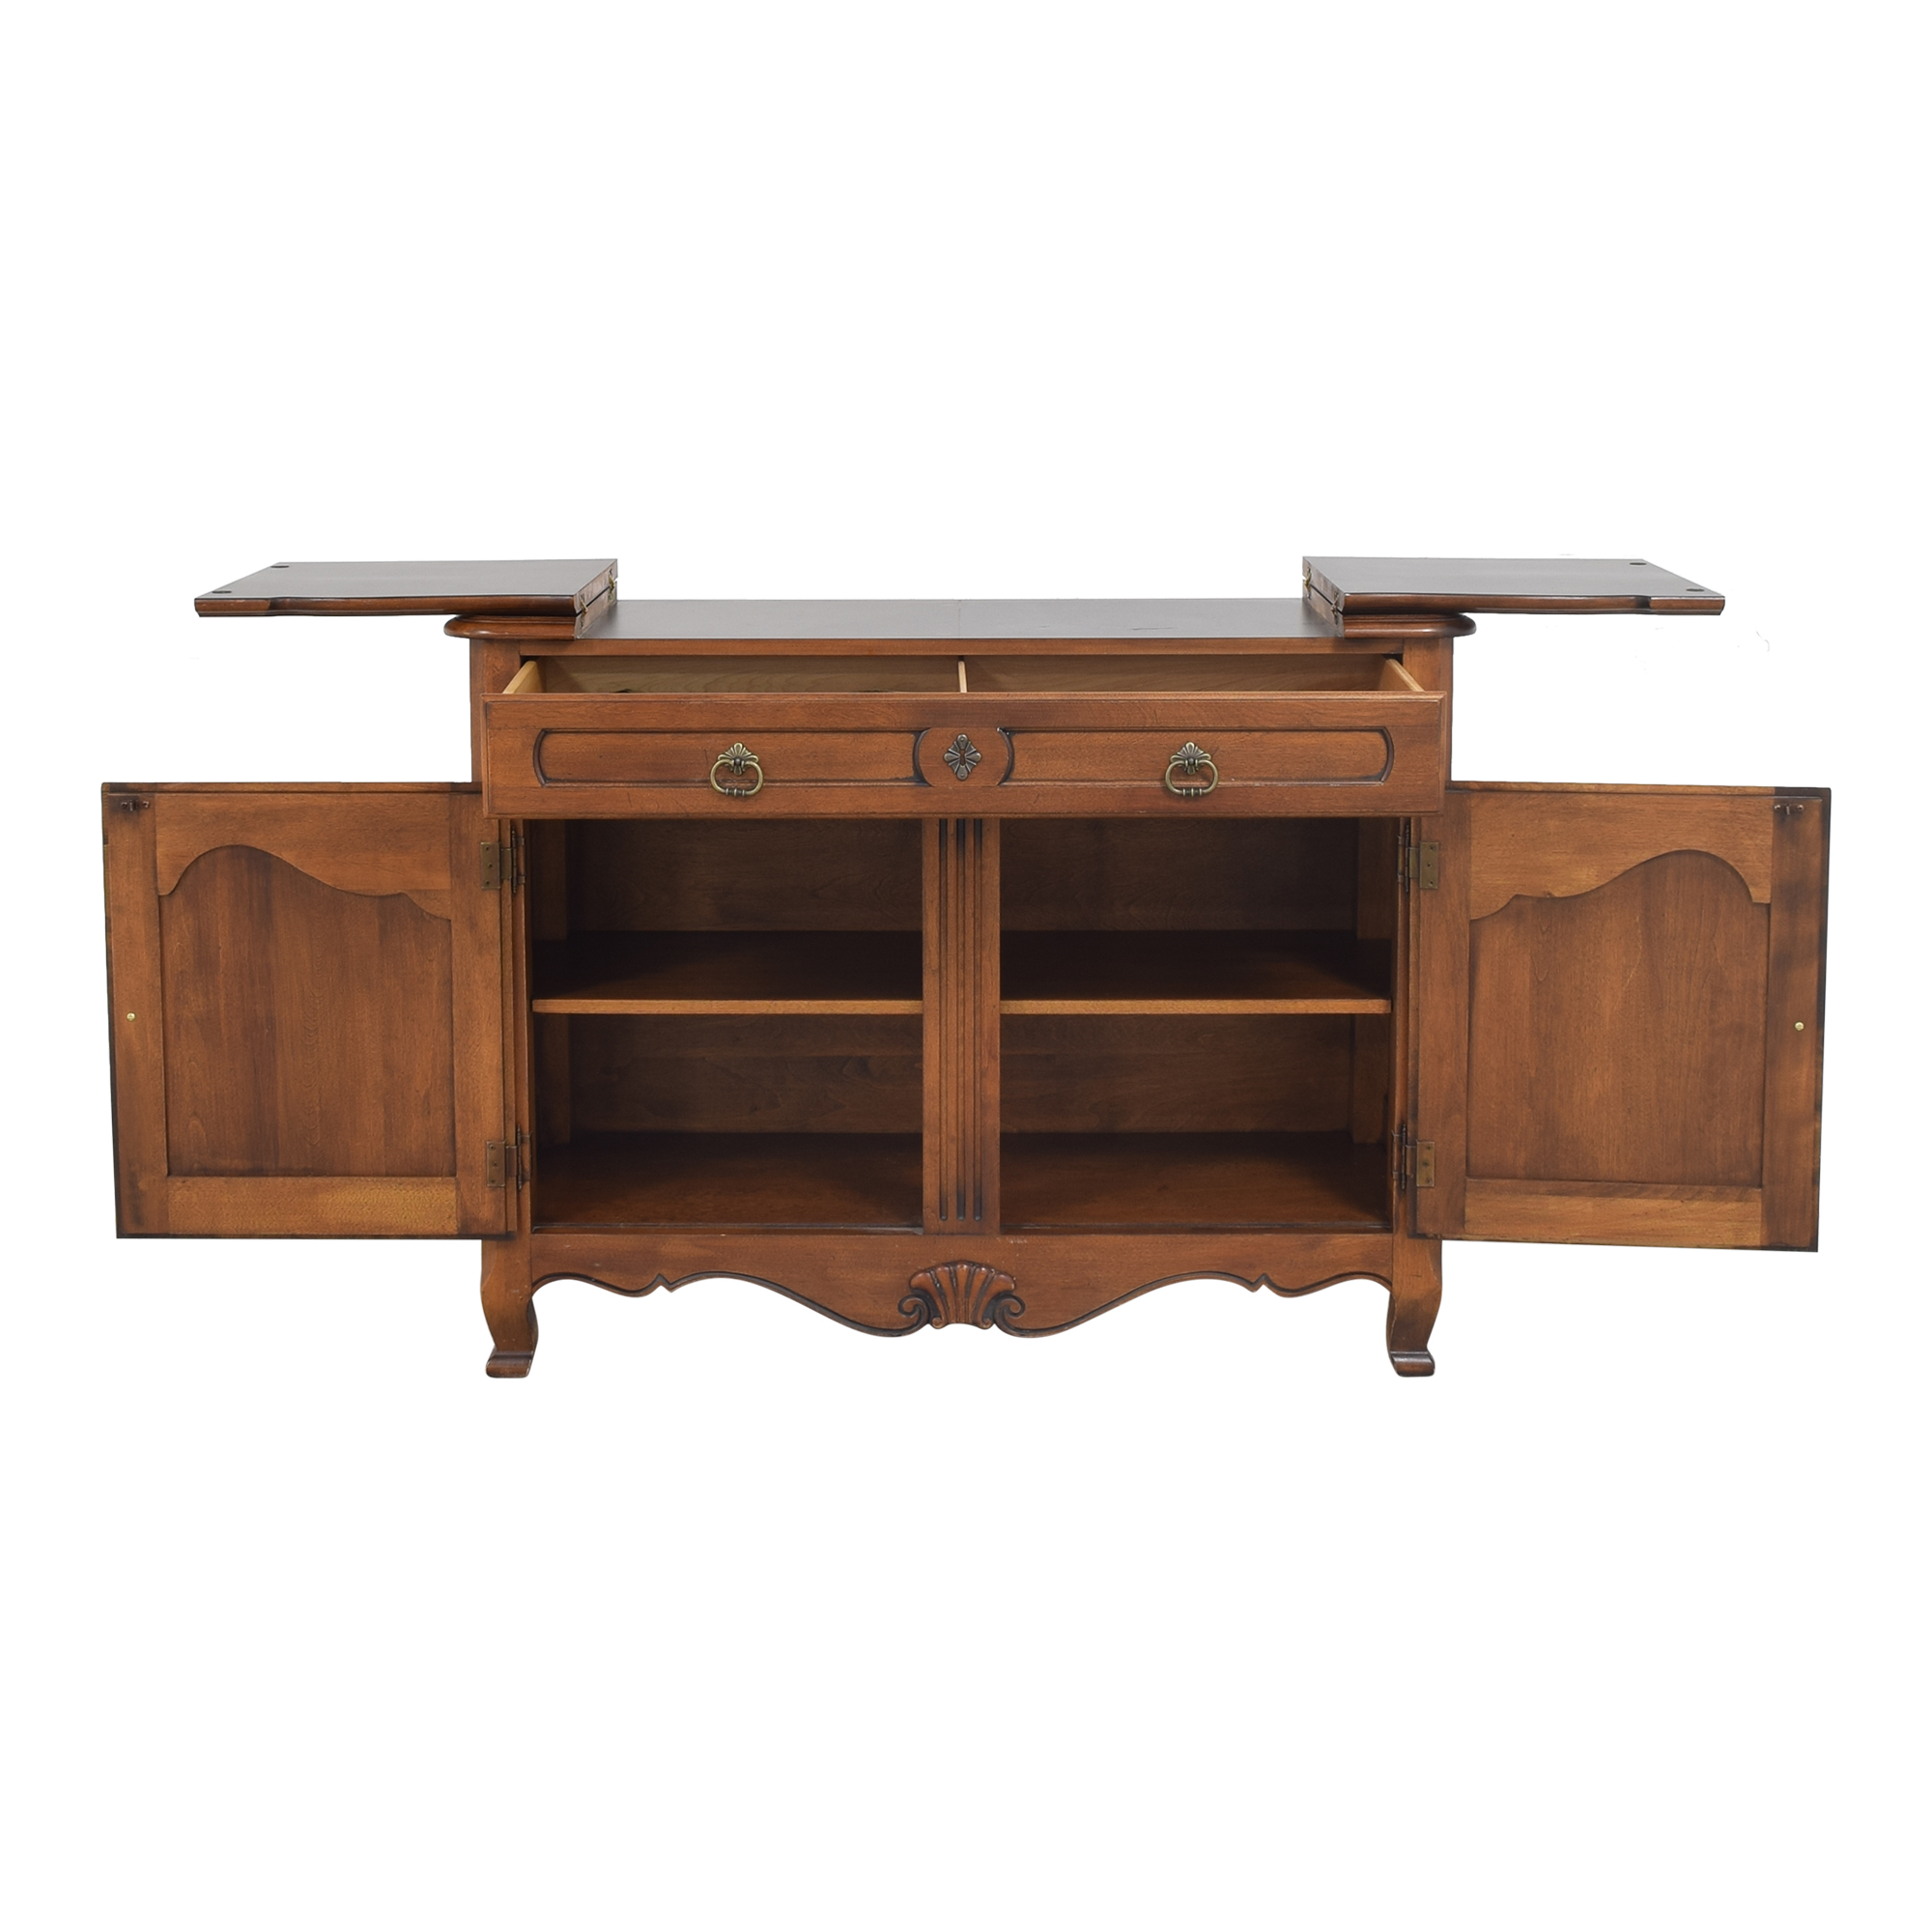 Ethan Allen Ethan Allen Country French Flip Top Server Buffet Cabinets & Sideboards